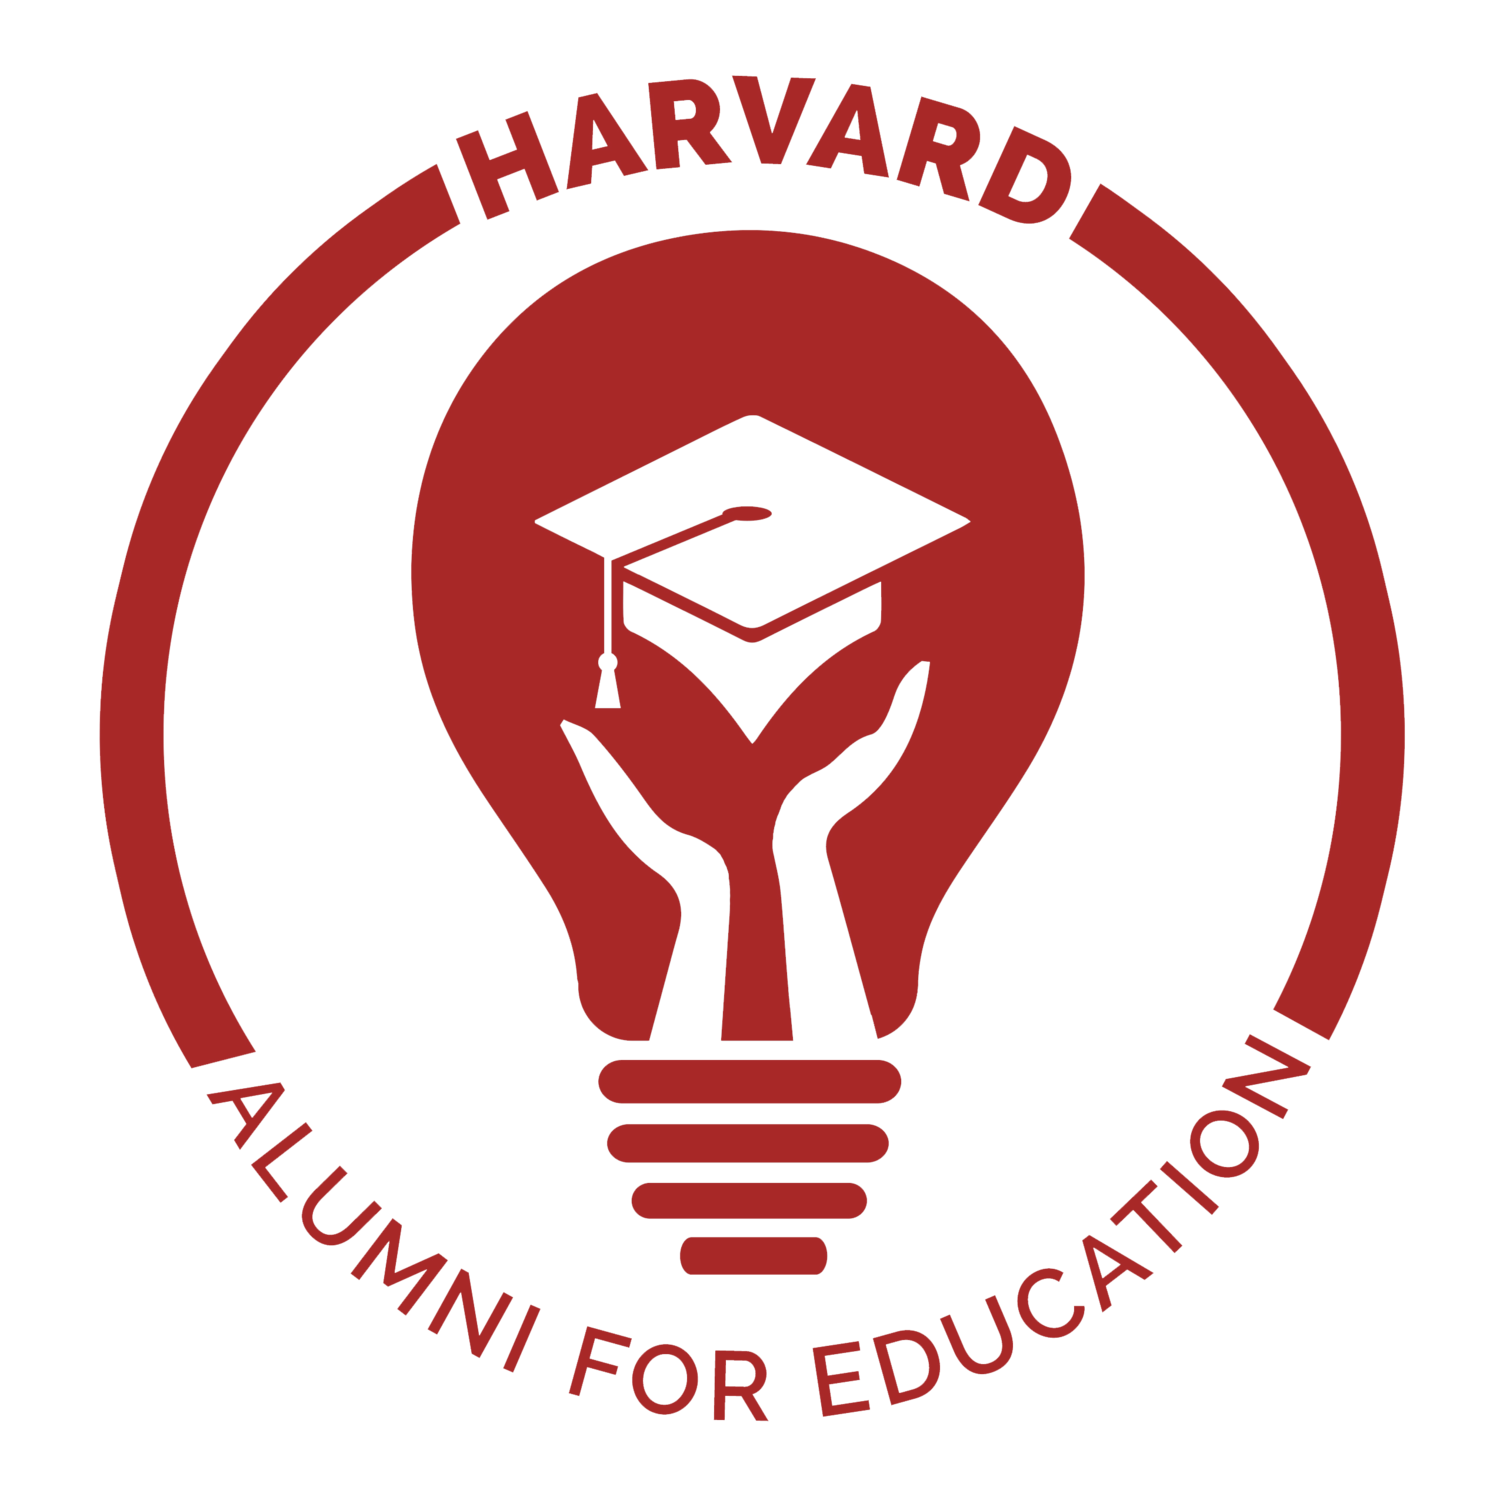 Harvard Alumni for Education